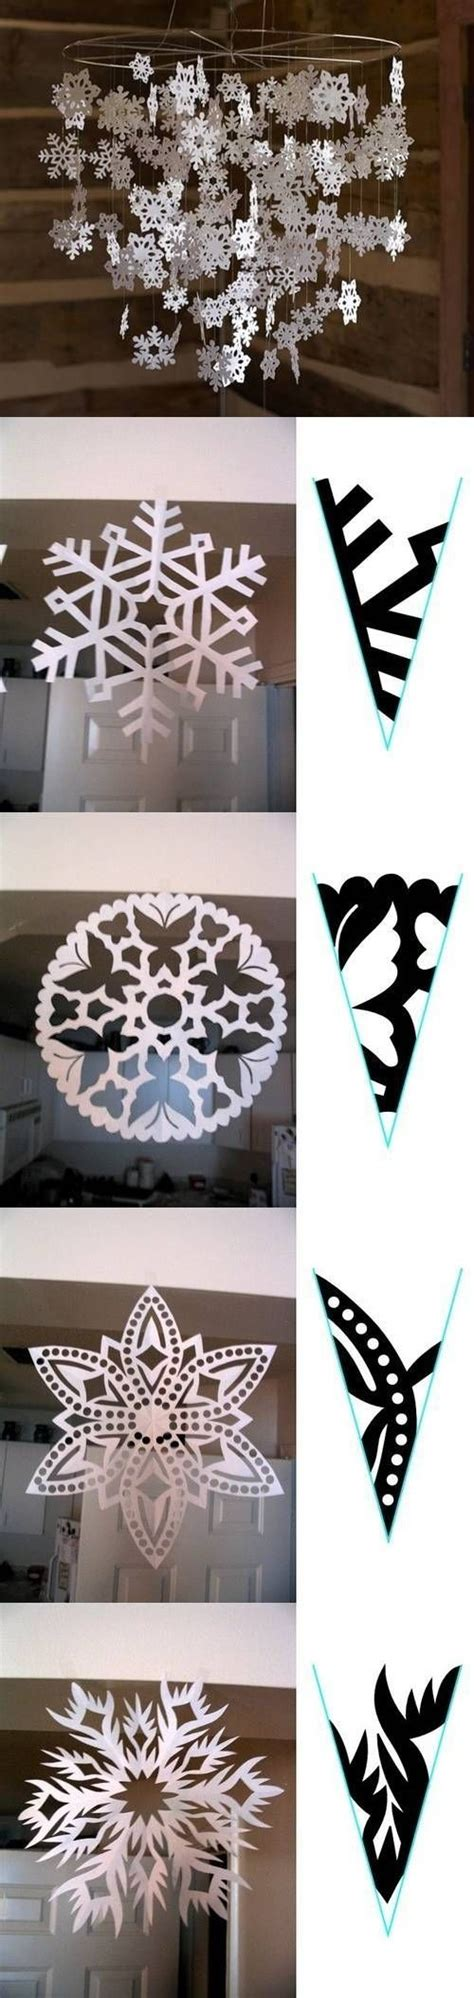 diy decorations paper snowflakes diy snowflake paper pattern diy craft crafts how to